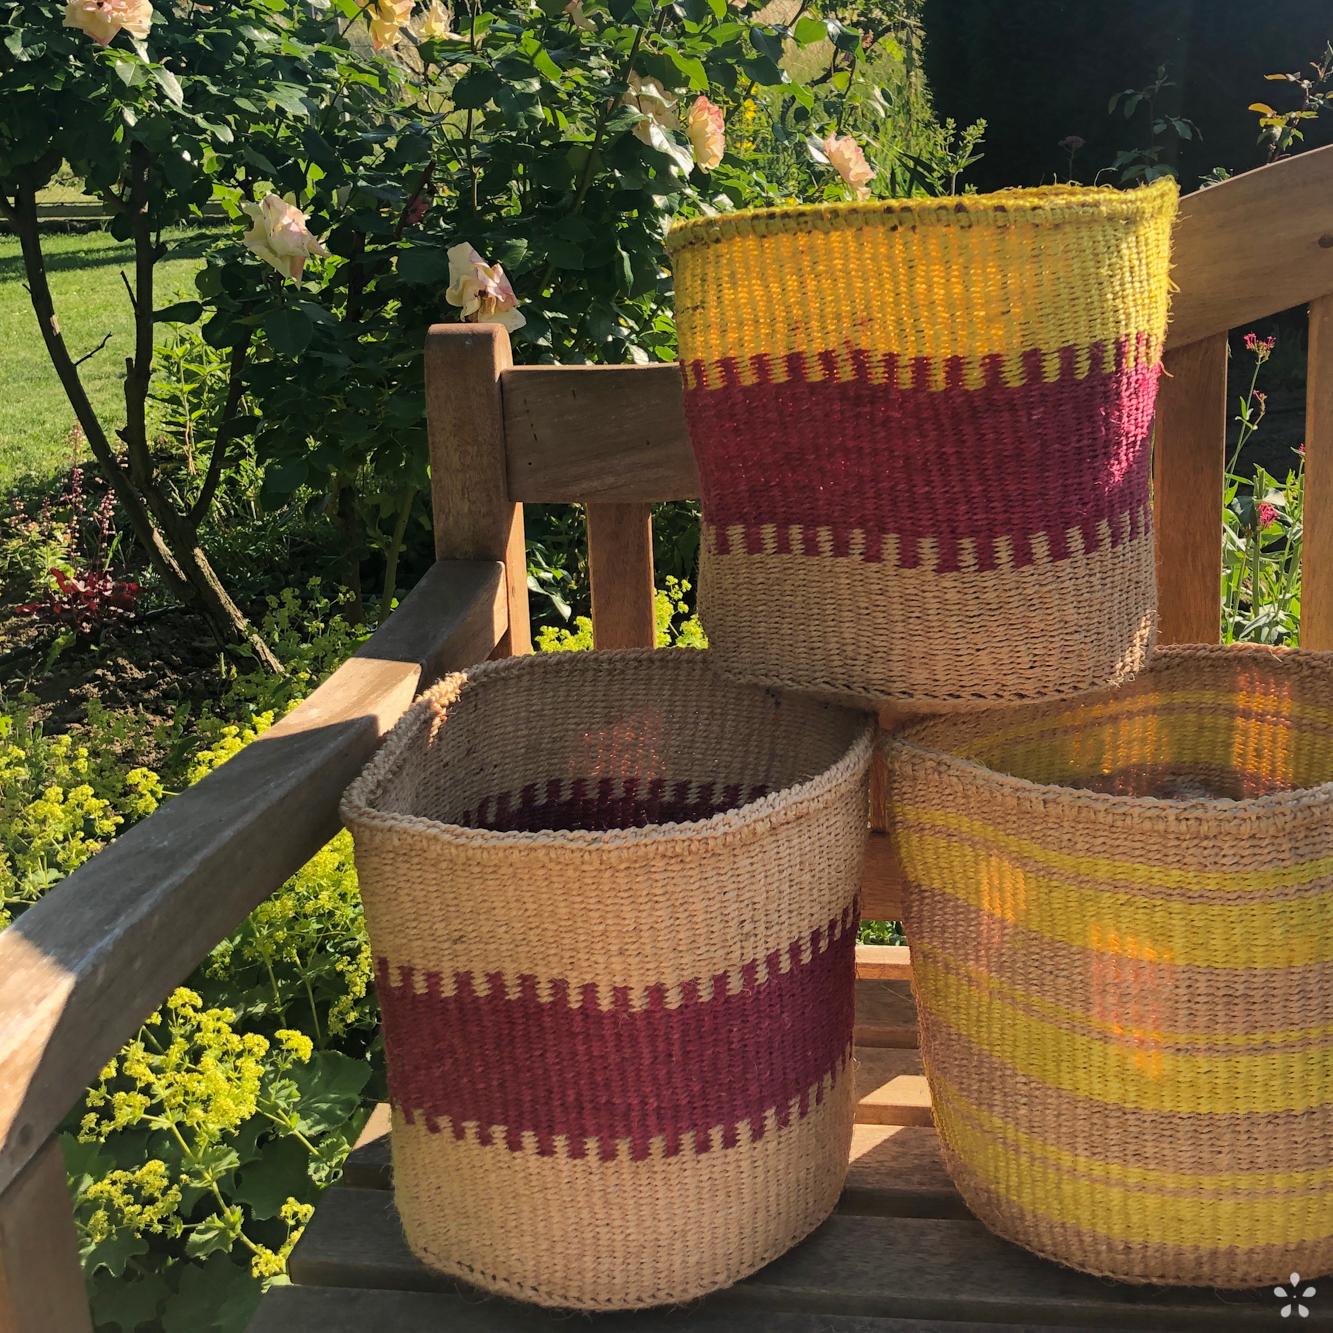 Handmade Sisal Baskets Neon Yellow Pink Bench Sun